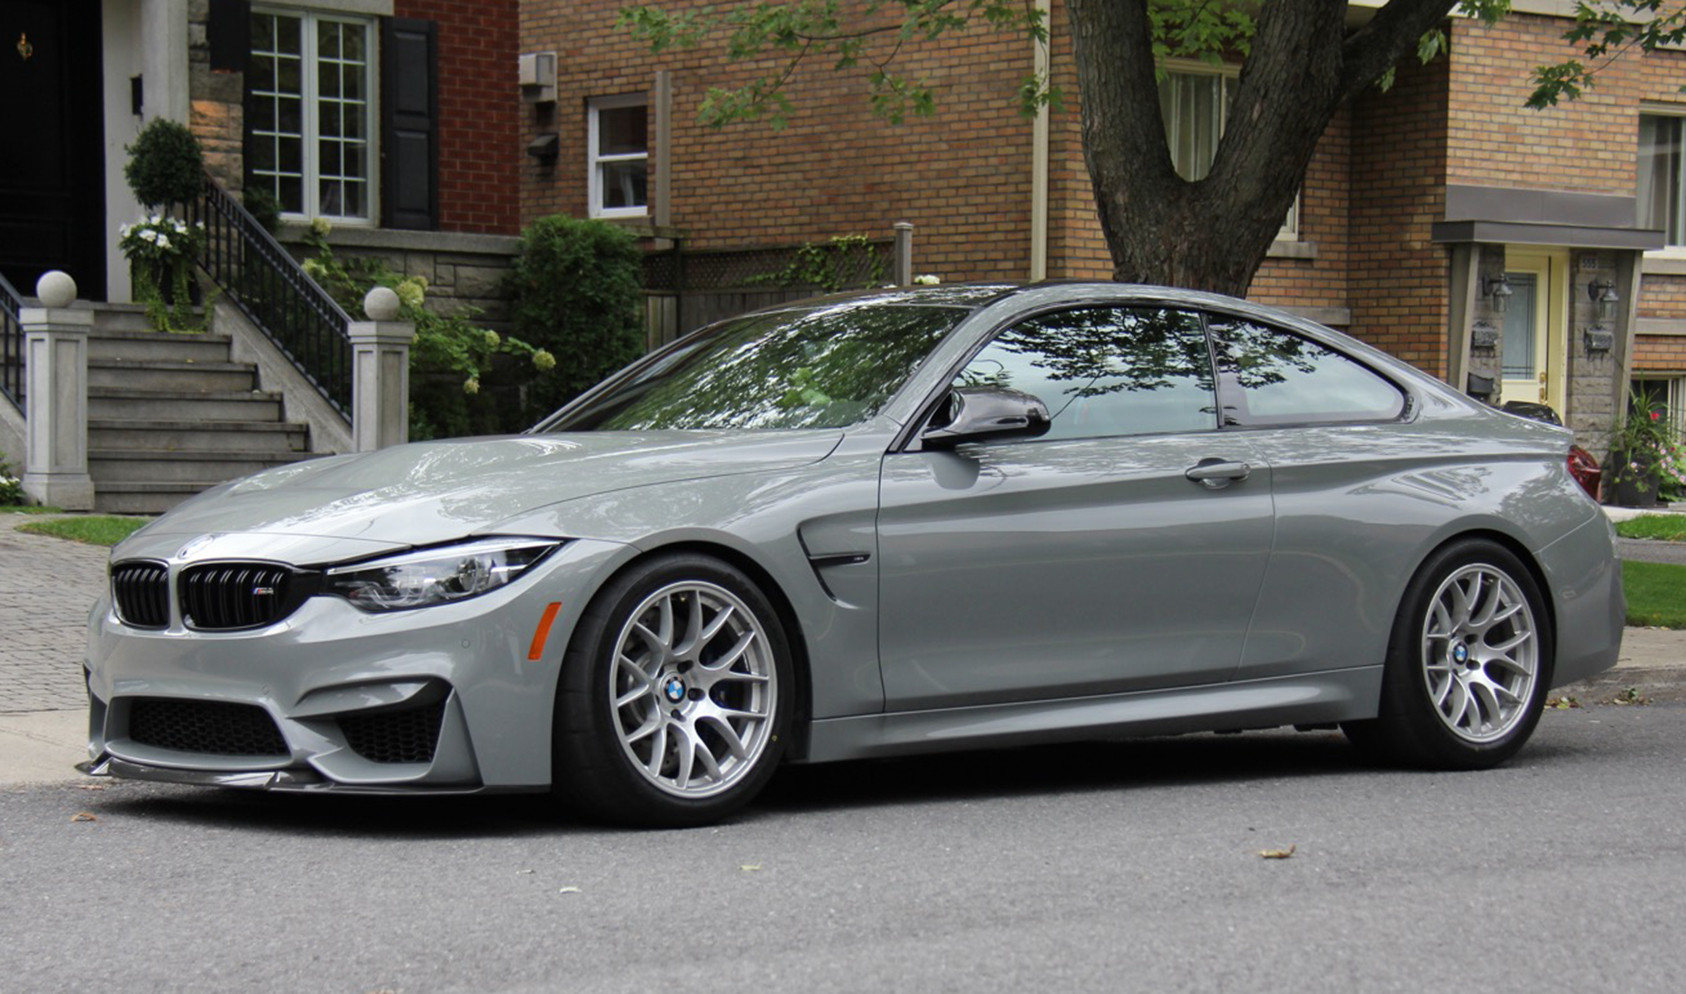 "F82 M4<br />Wheels: Race Silver EC-7 18x10"" ET25 front, 18x11"" ET44 rear"